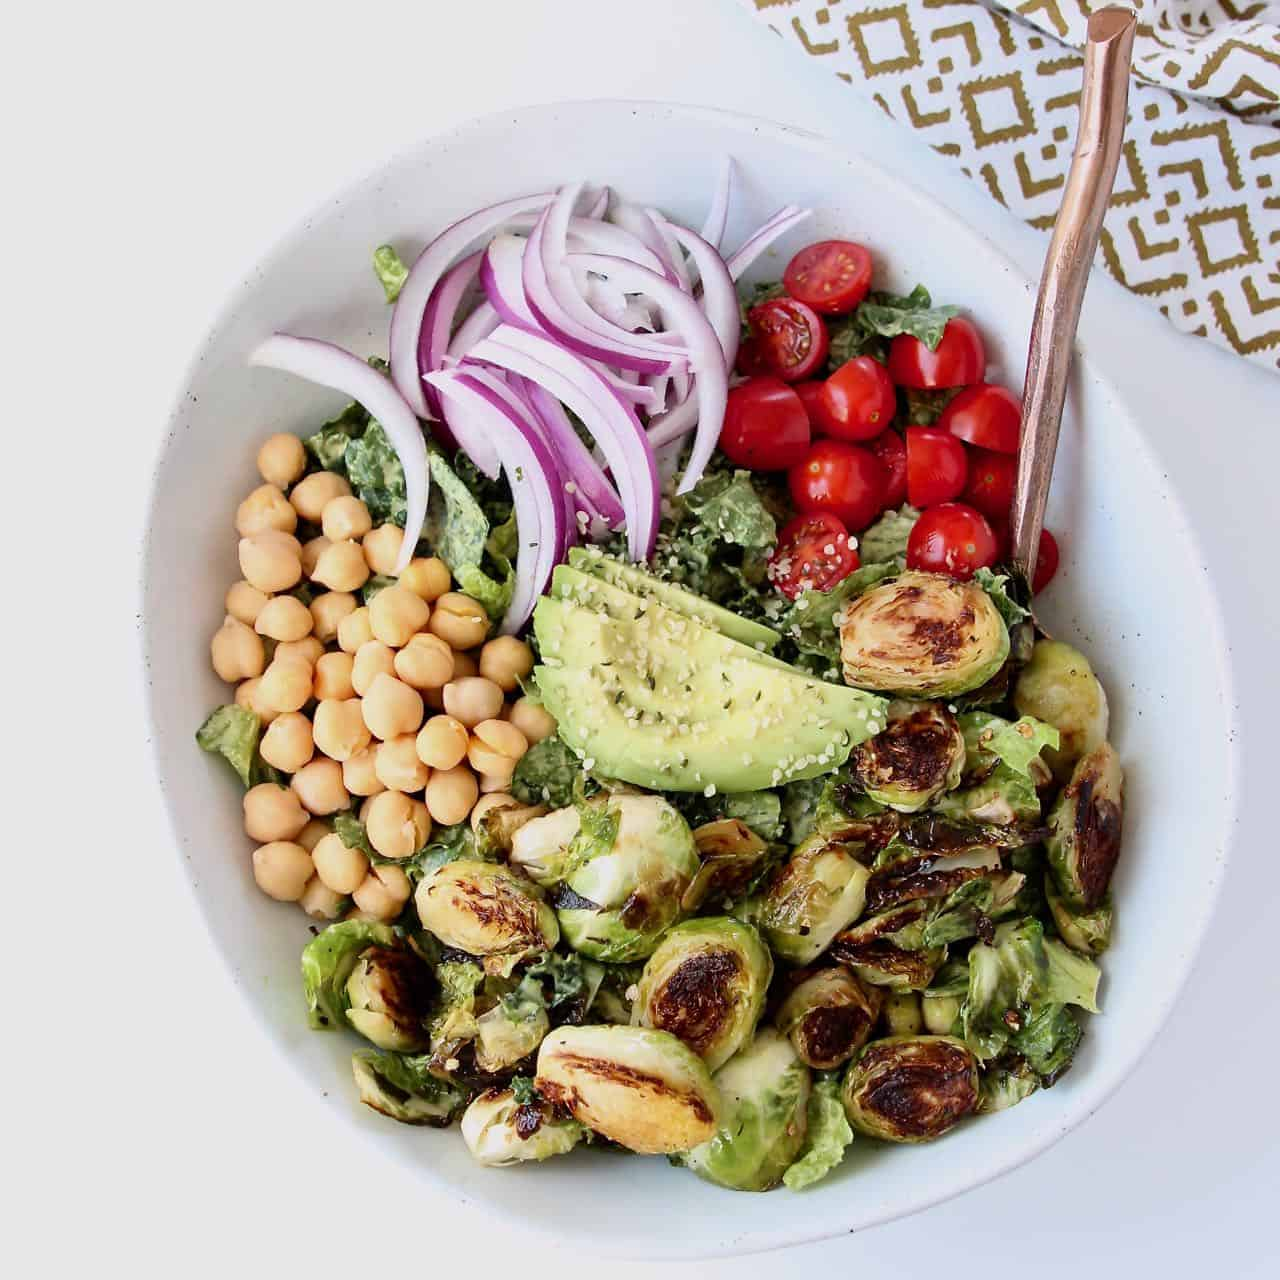 Overhead image of salad in bowl with roasted brussels sprouts, tomatoes and avocado